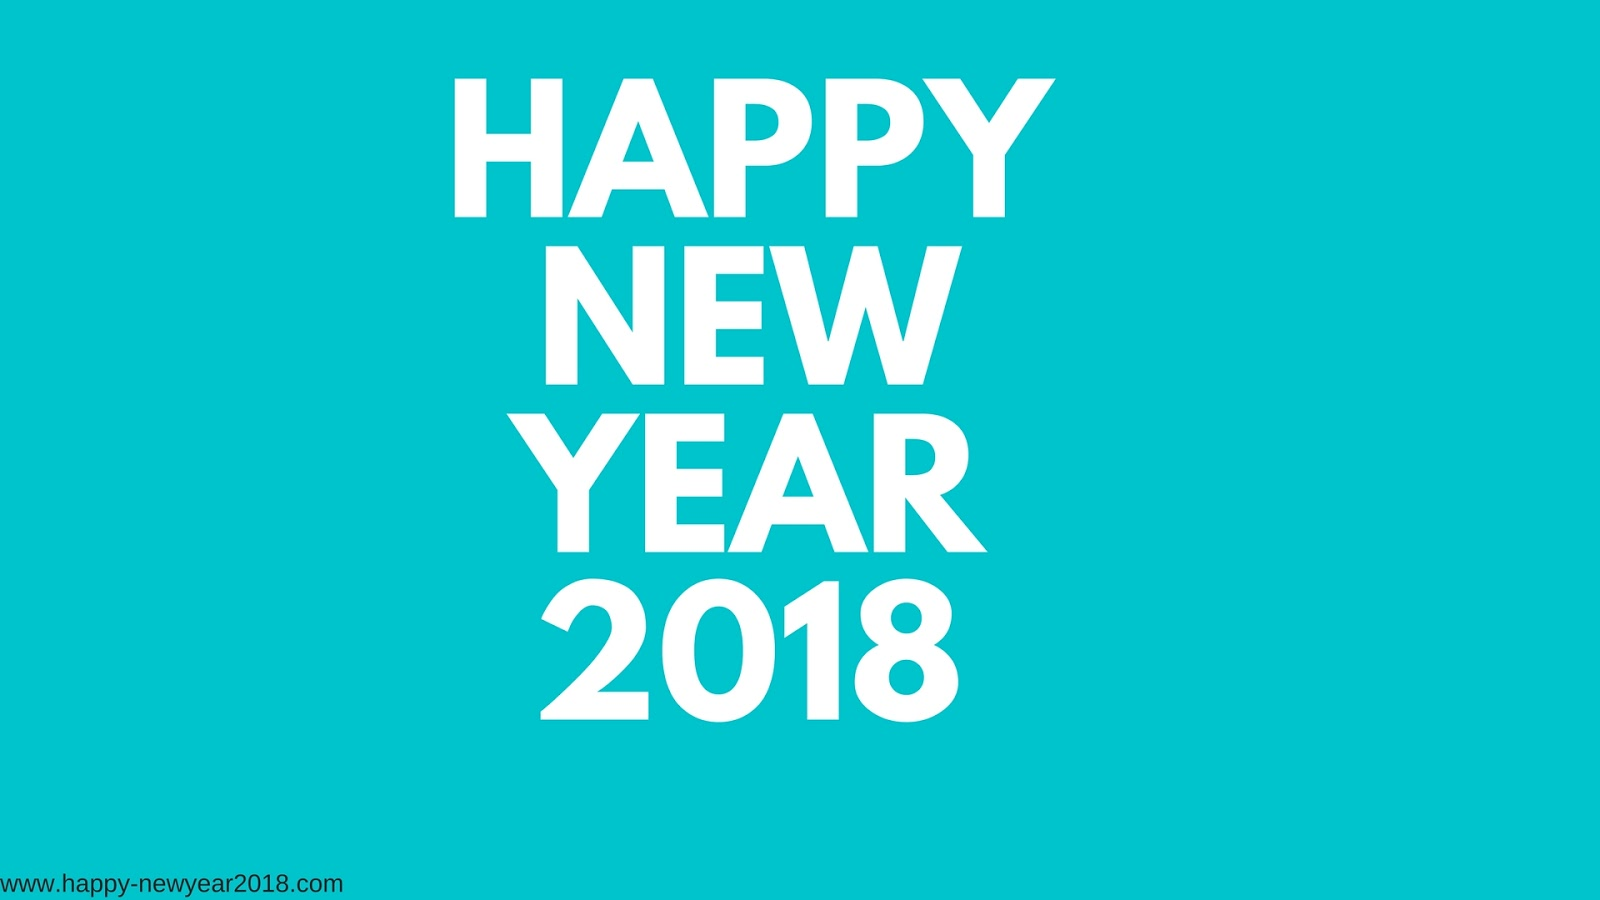 new year 2018 images new year wishes